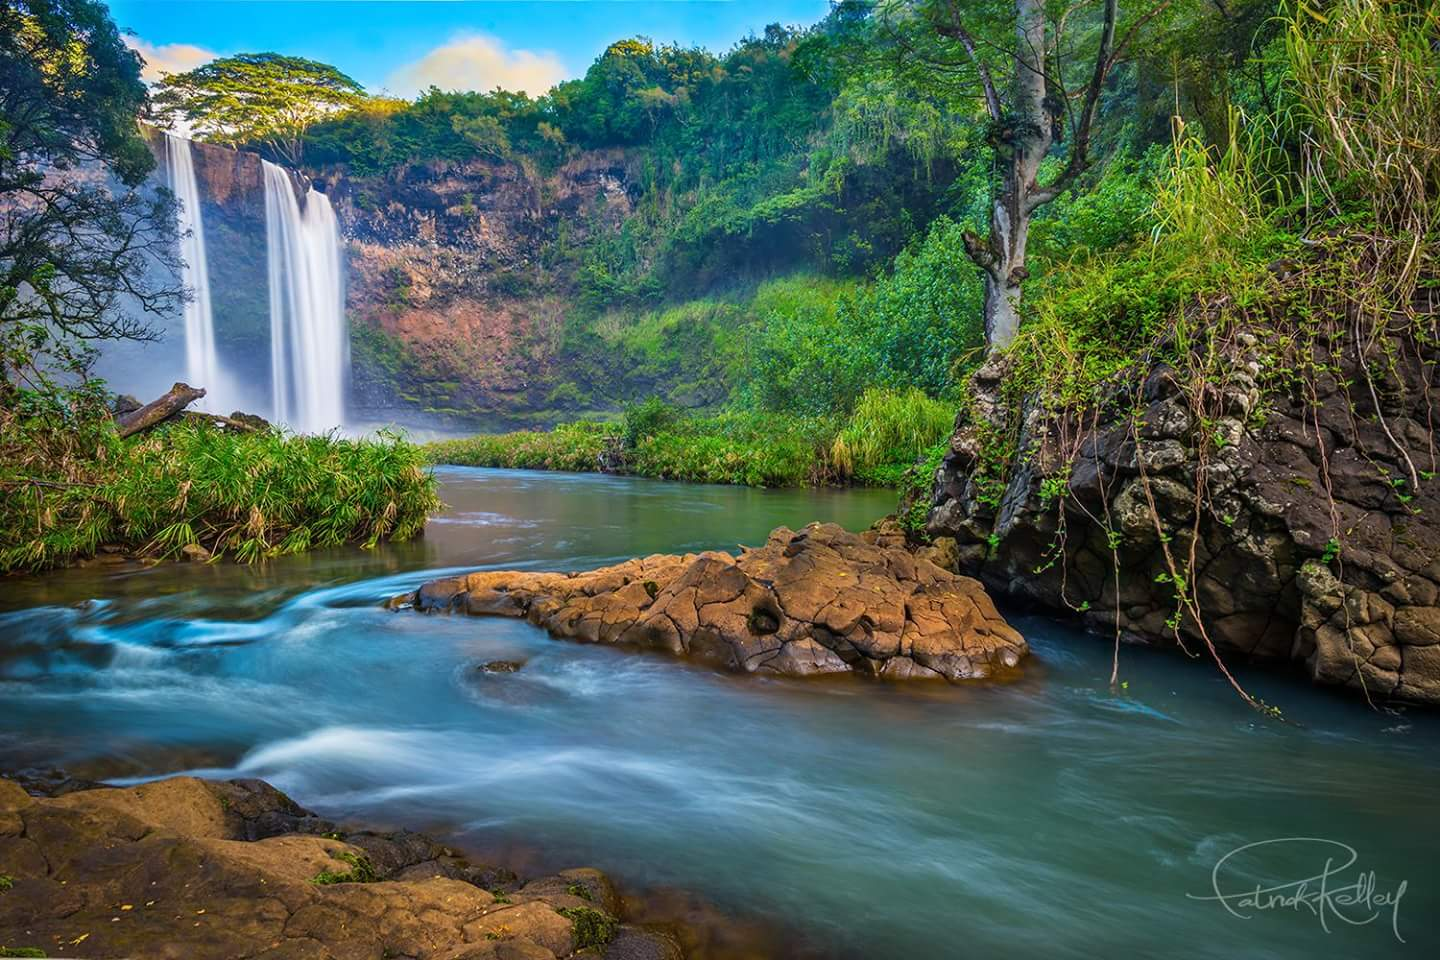 Wailua Falls, Kauai, Hawaii. Photo: www.pk-worldwide.com (Patrick Kelley), Image©Patrick Kelley